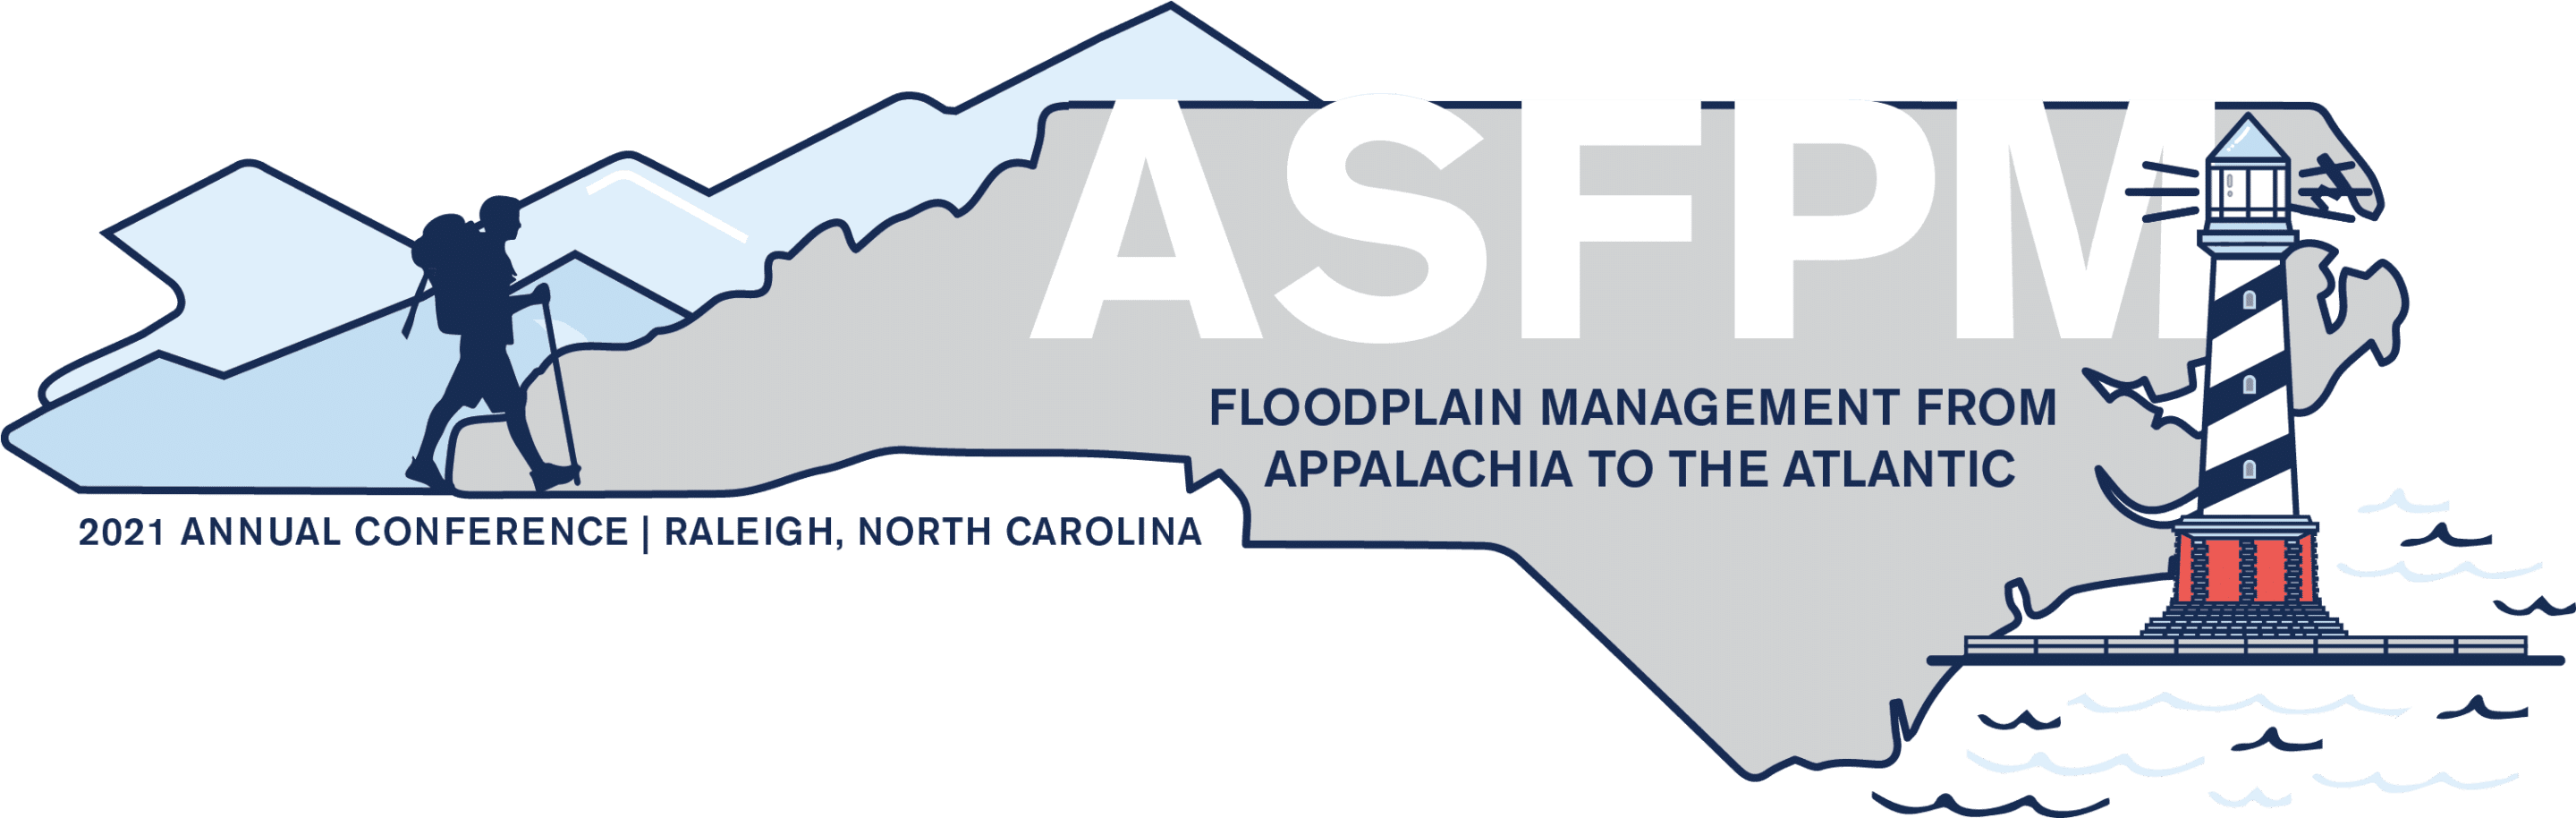 2021 ASFPM 45th Annual National Conference - Raleigh, North Carolina